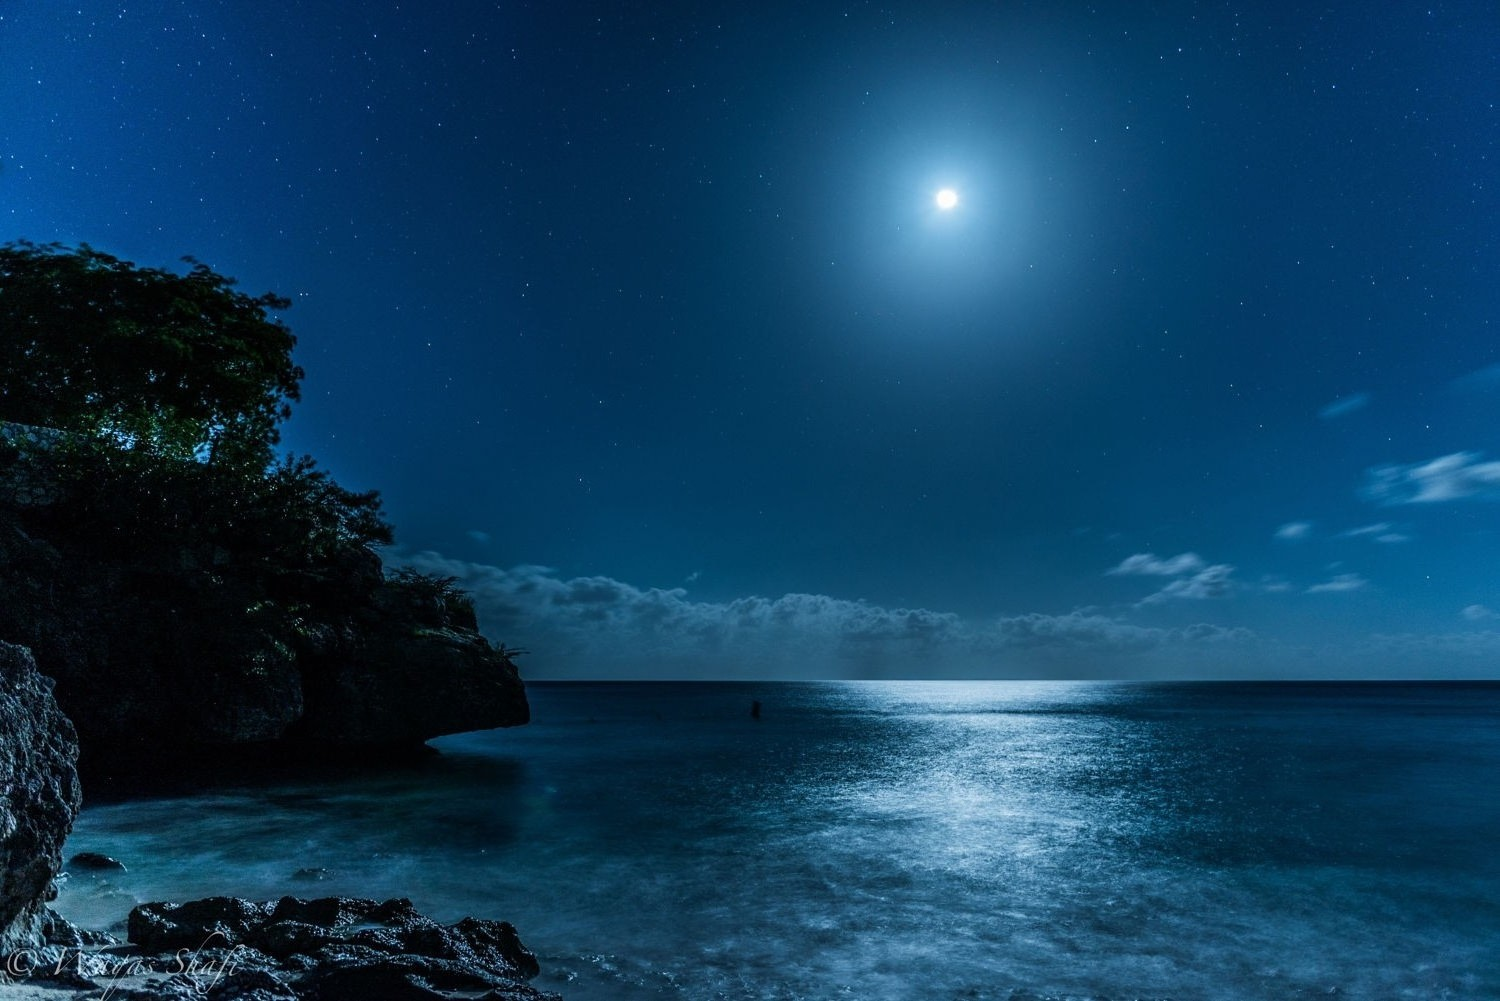 Fall Wallpaper 1600x900 Landscape Nature Caribbean Sea Starry Night Moon